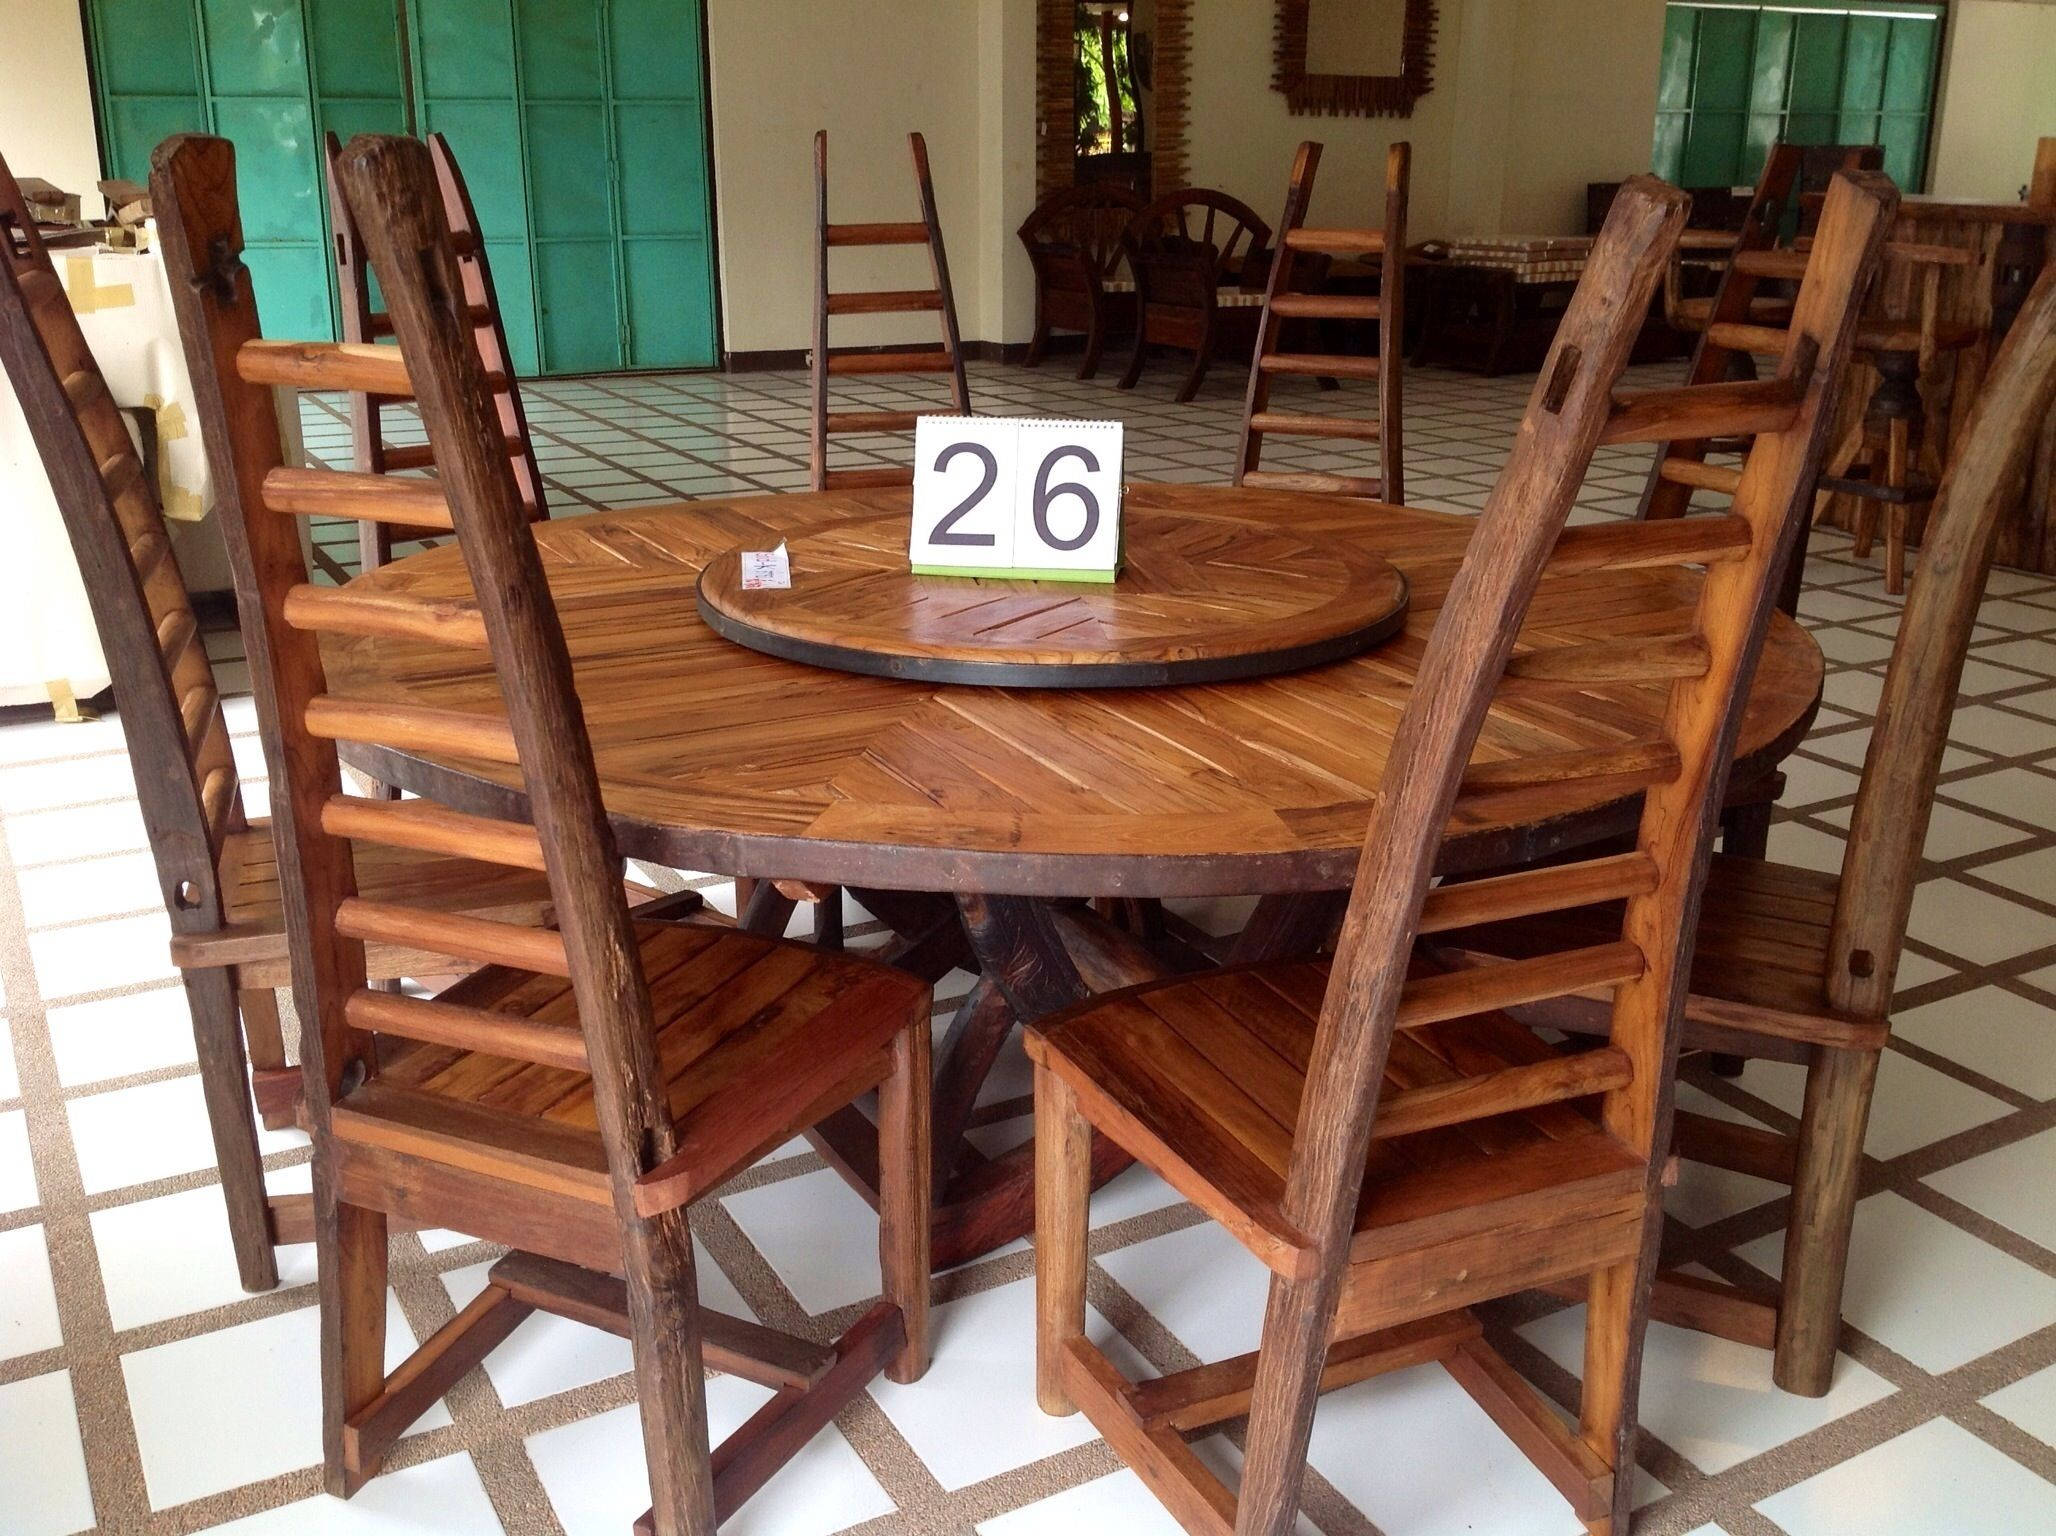 Handcrafted Reclaimed Ox Cart Teak Wood Dining Table With Lazy Susan And Chairs From Chiang M Wooden Dining Table Designs Dining Table Design Wood Table Design